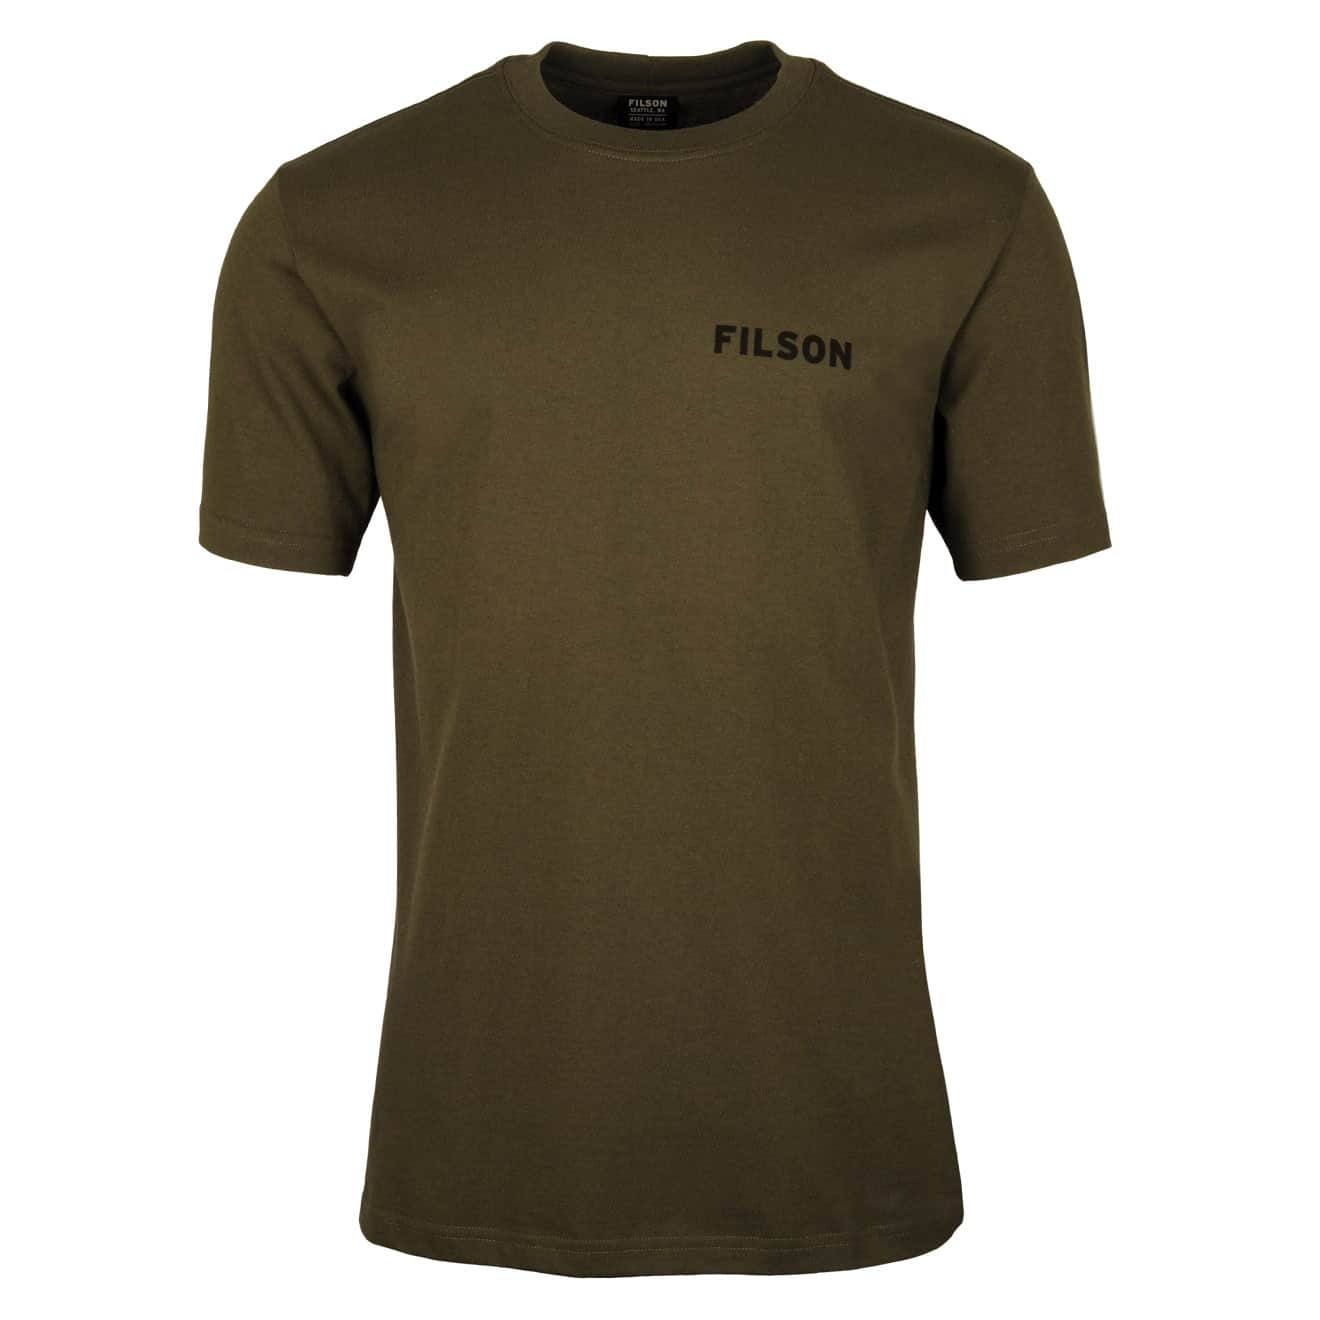 Filson Outfitter Graphic T-Shirt Otter Green 2